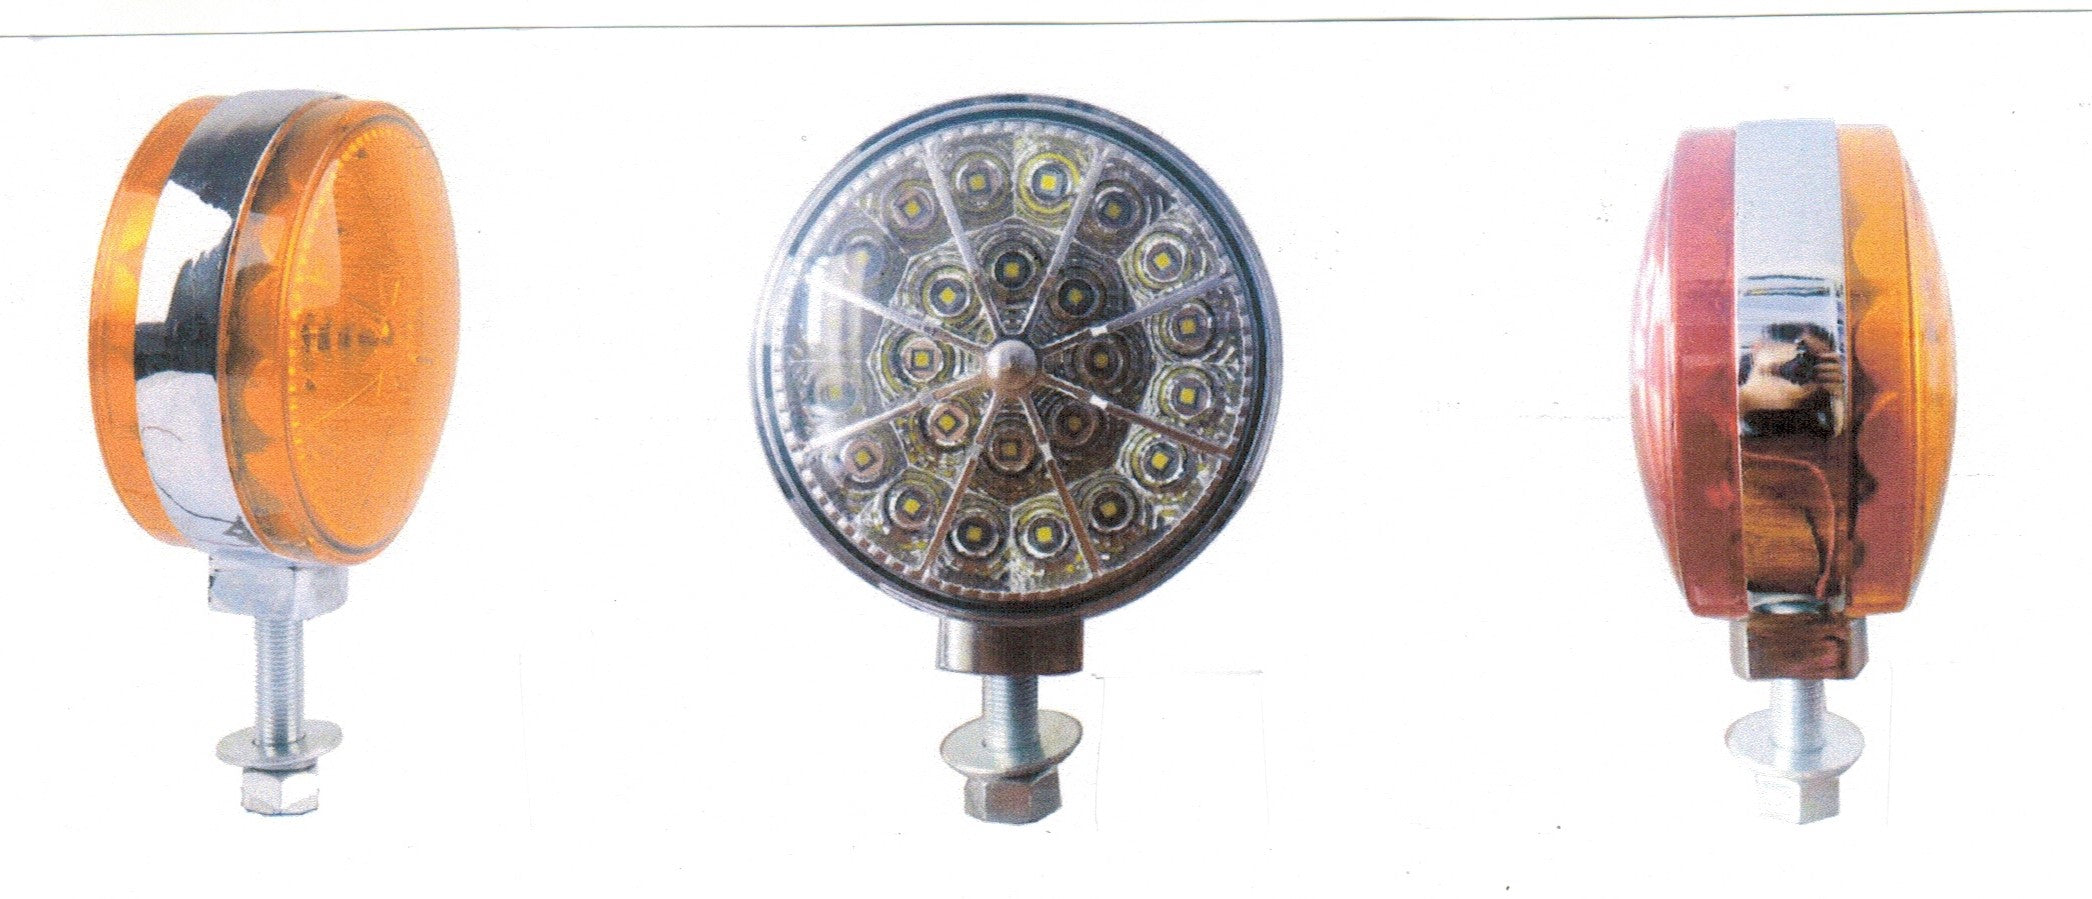 Spanish Light 48 SMD Led - truck-shopping.it